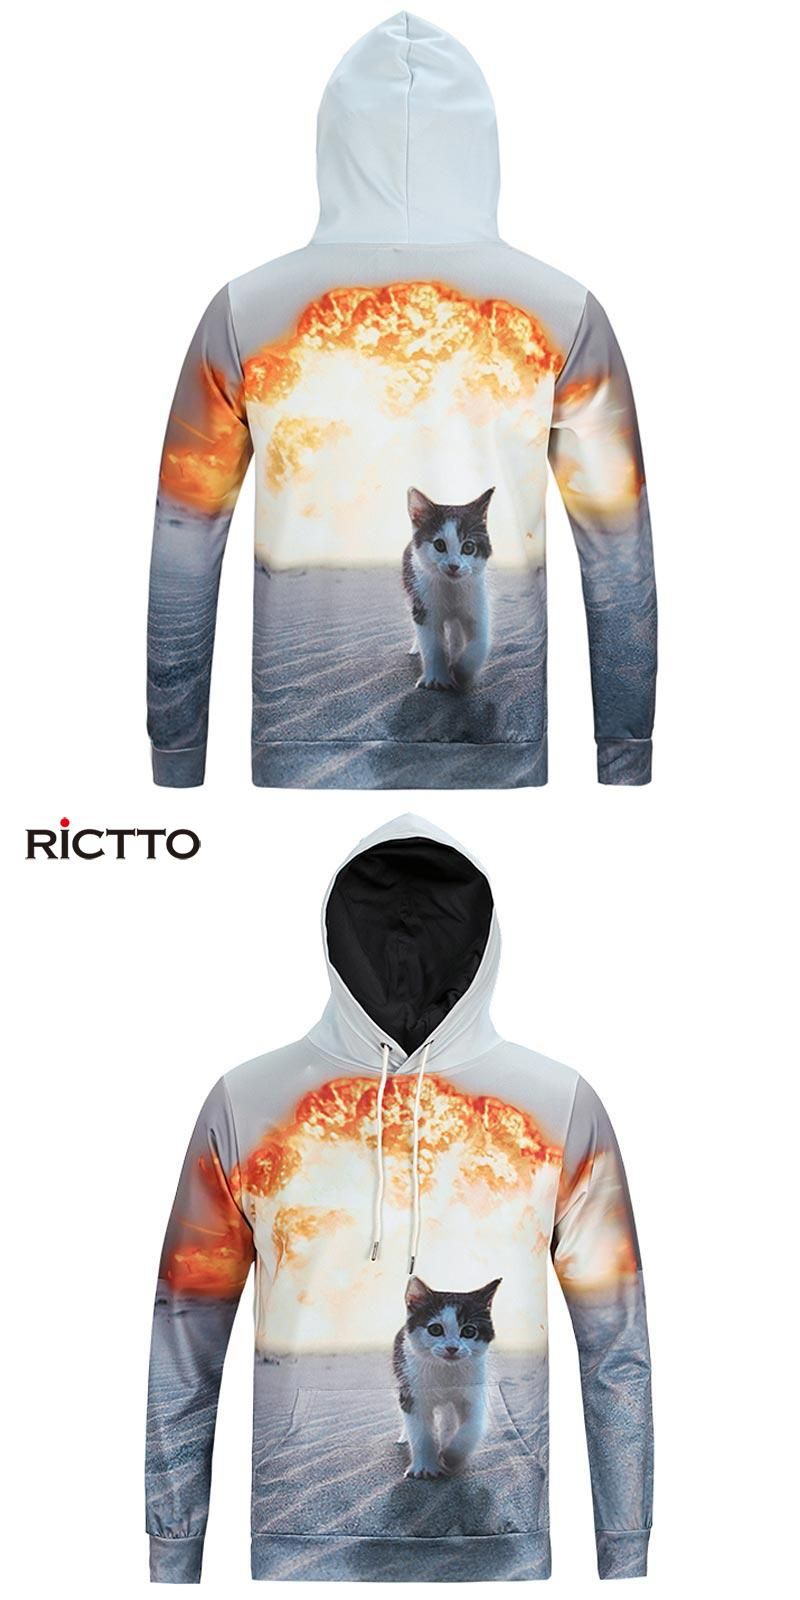 fb8900a811c Rictto Autumn Winter Fashion Cap Hoodies Men Long Sleeve Pullovers Print  Sand Cat Casual Hoody 3d lovely Sweatshirt